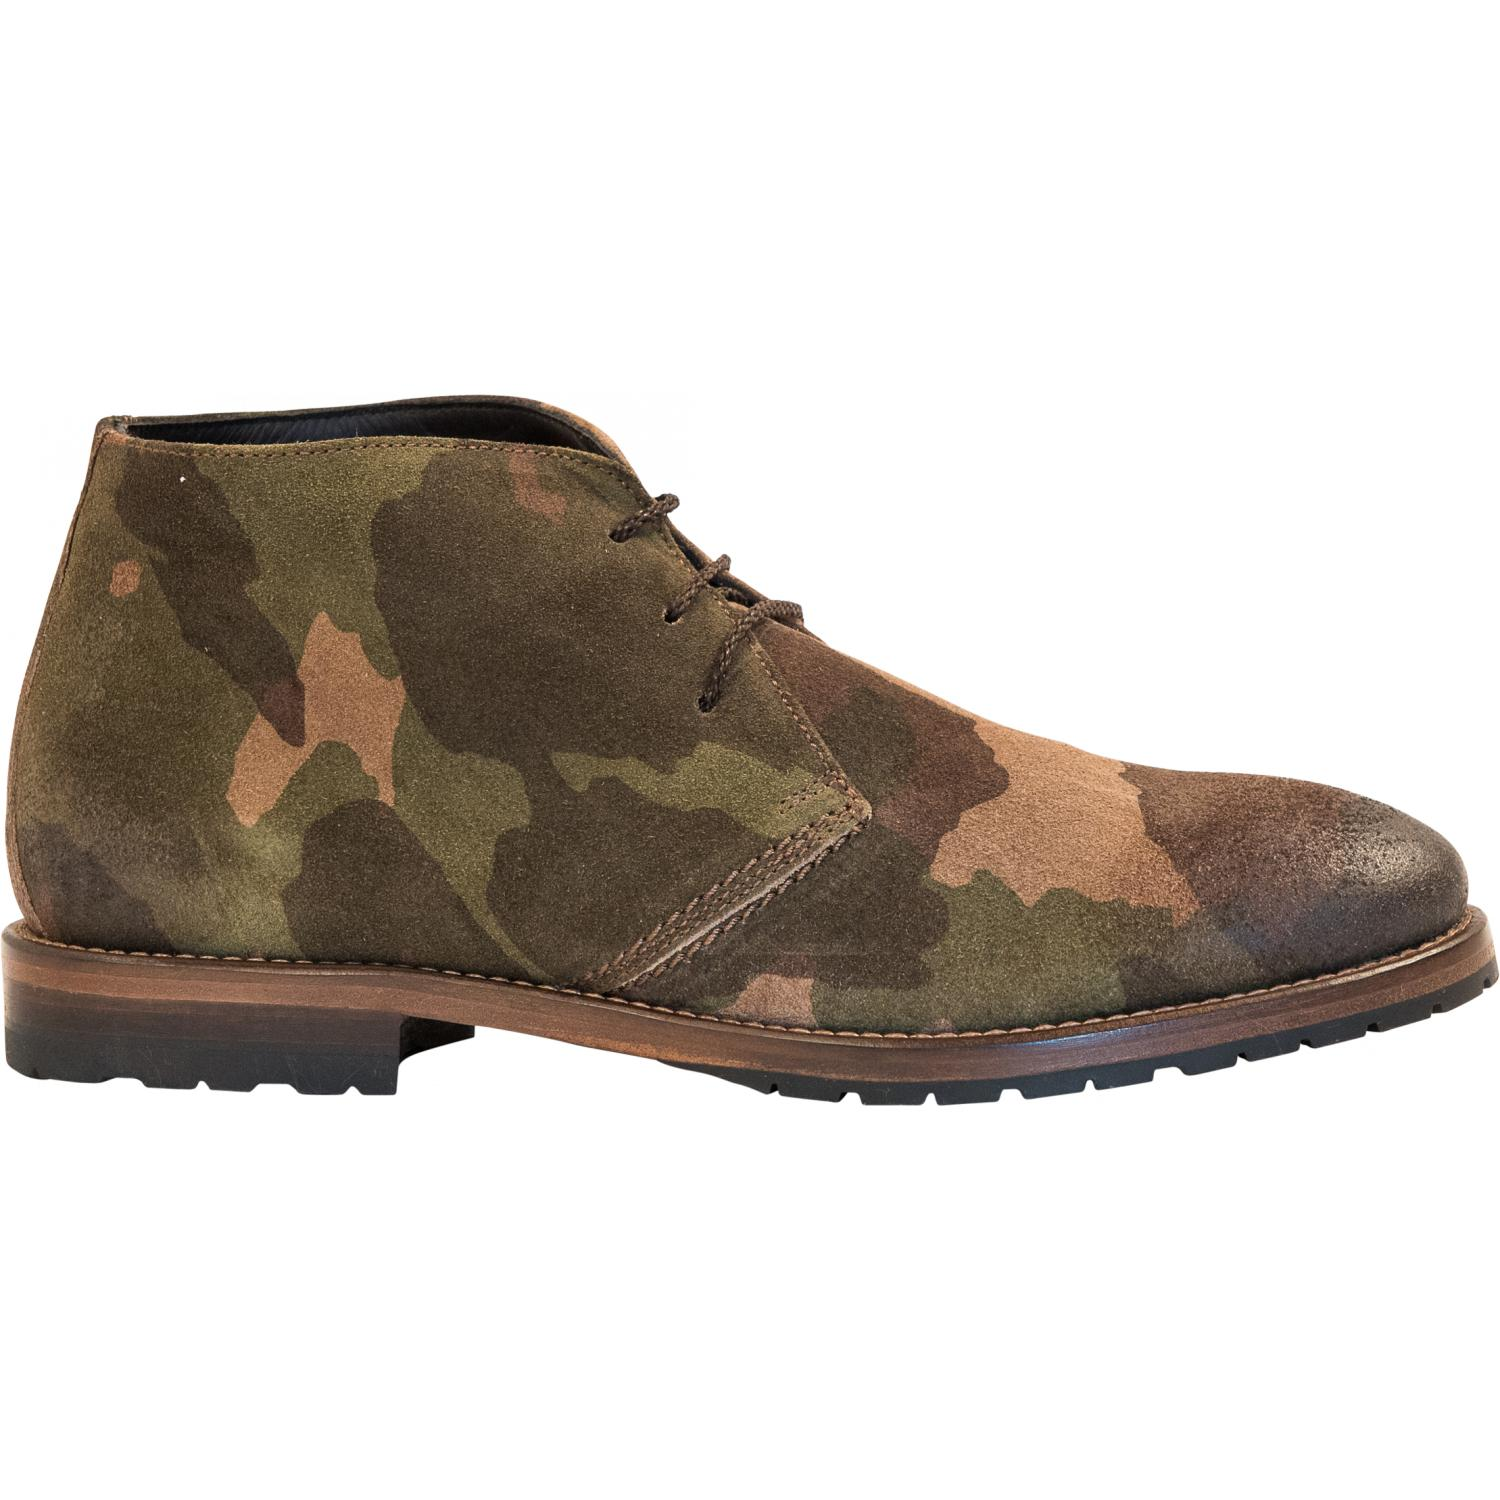 Brenda Camouflage Quot Hunting Quot Suede Desert Chukka Boots